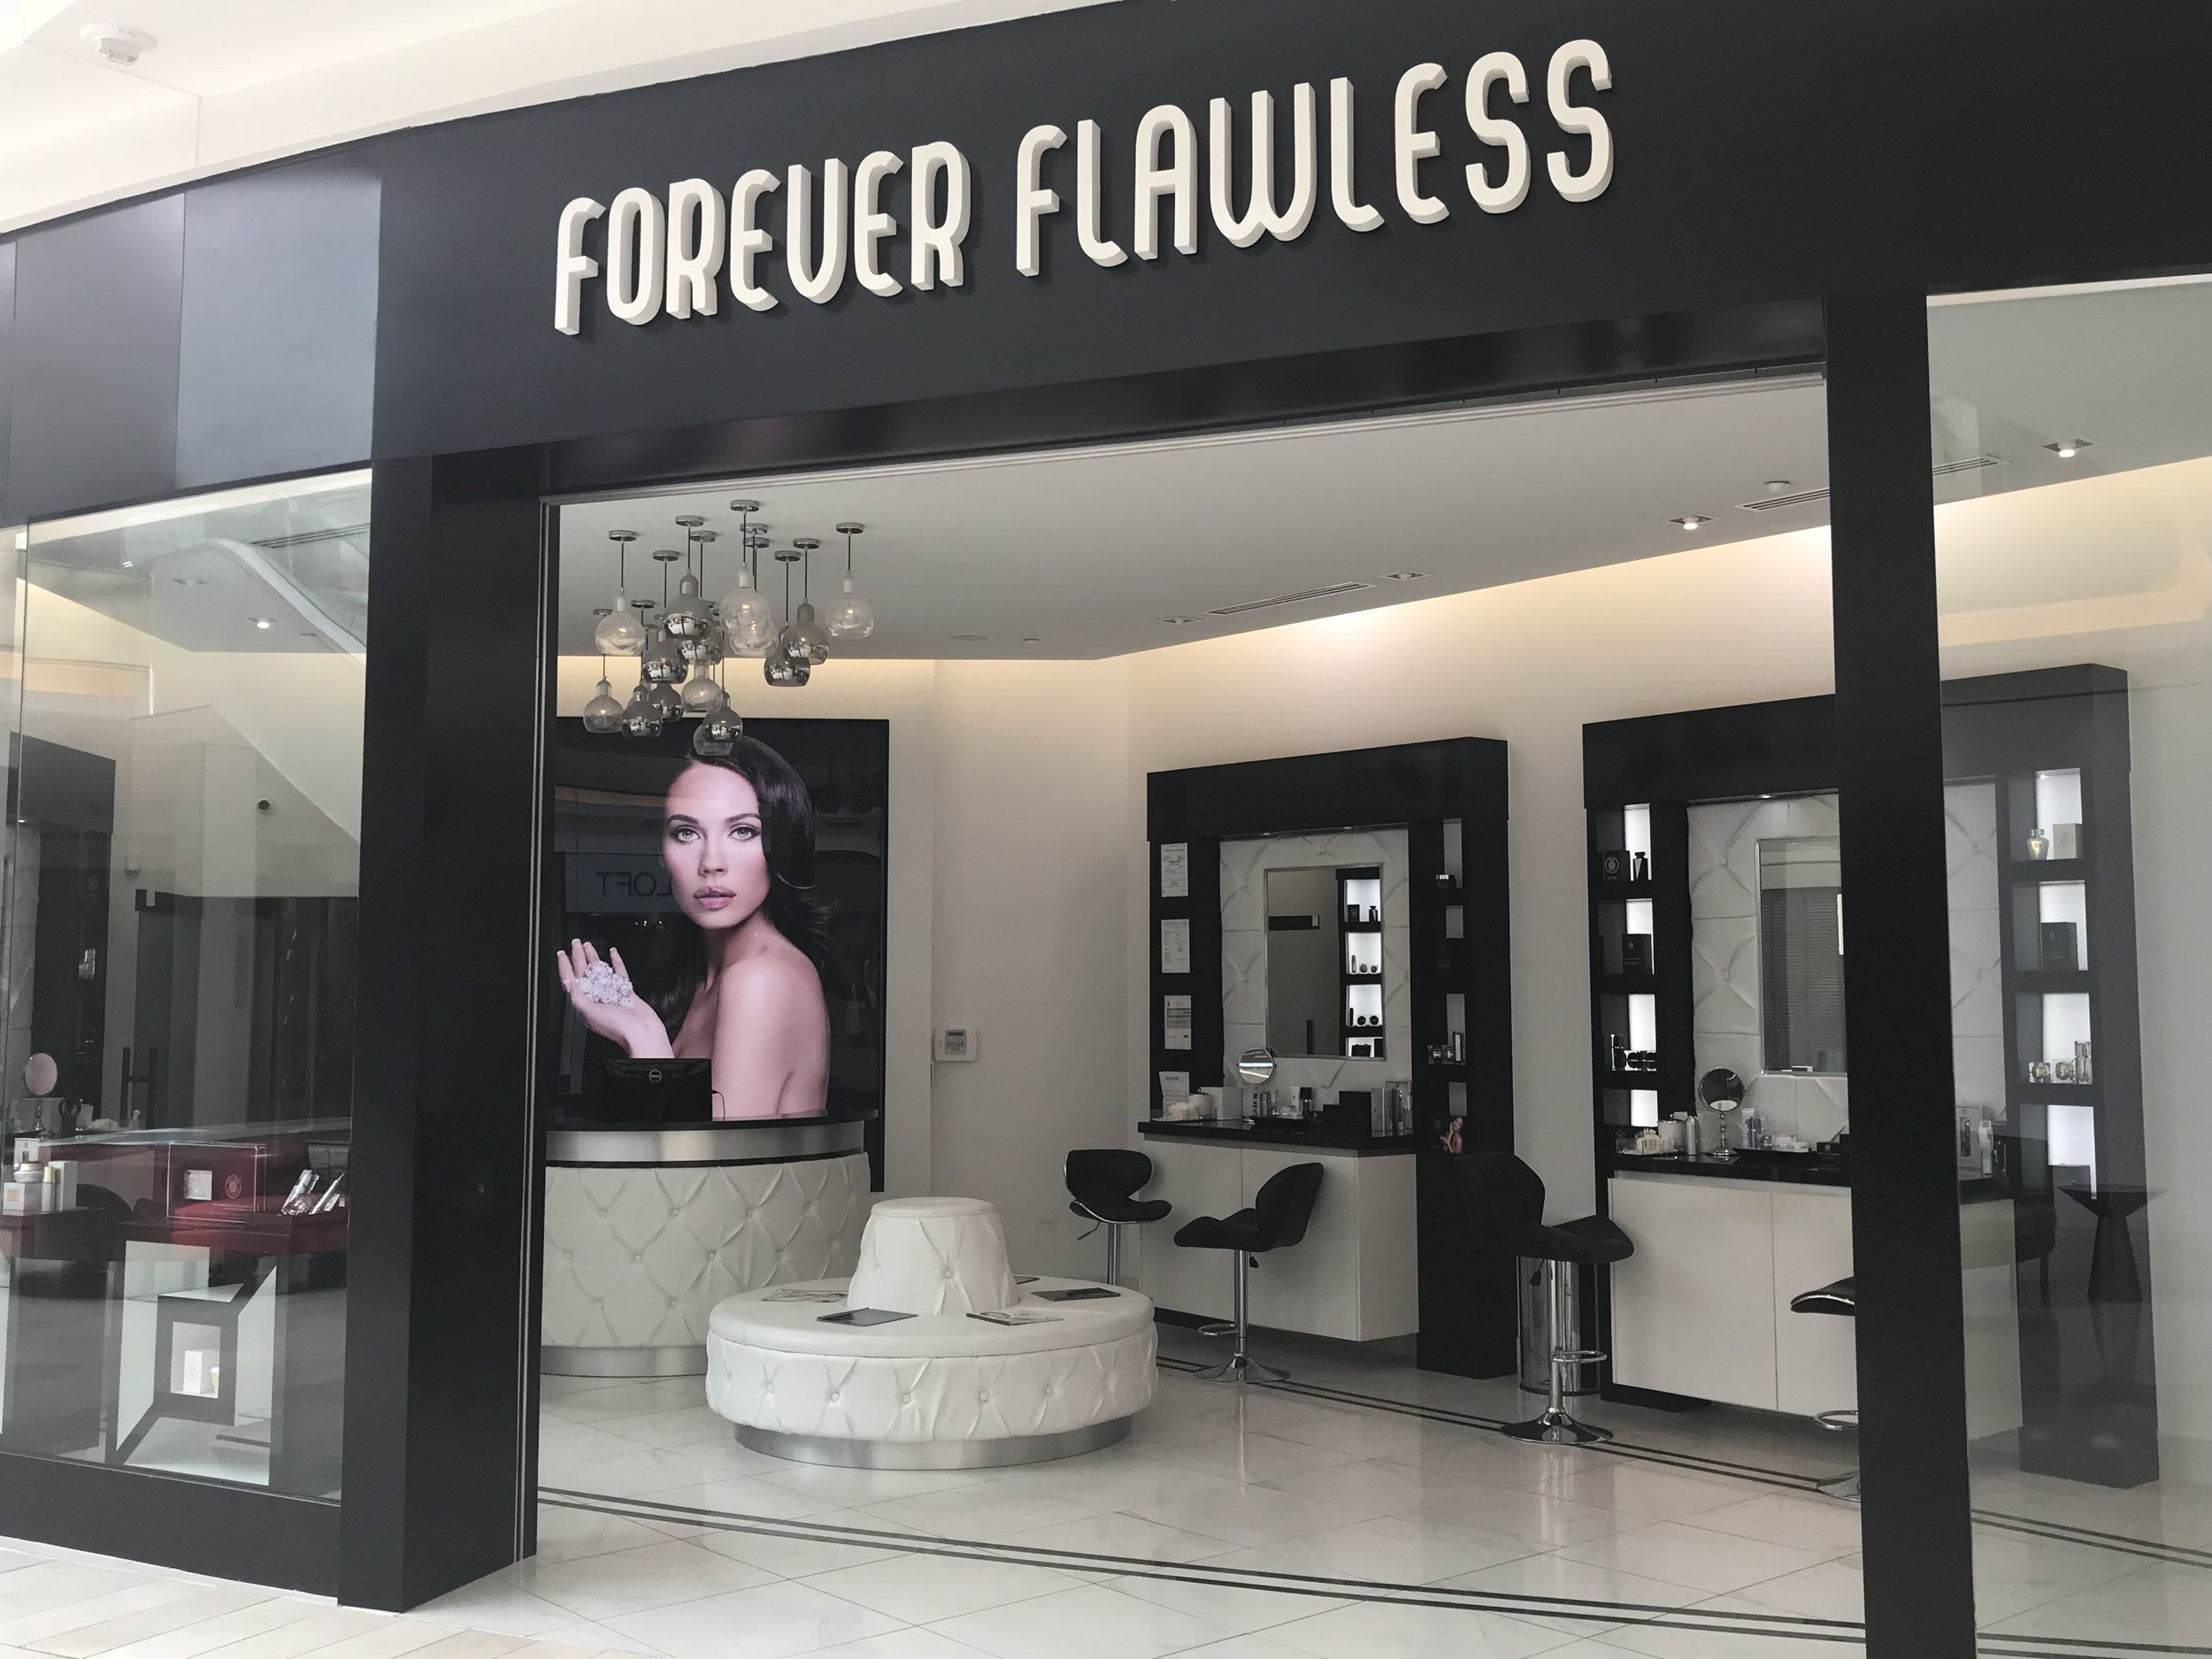 50% instant discount on any purchase, upon presentation of Key Club Card - *Free Facial with Forever Flawless products.*Free gift with any $500.00 purchase.